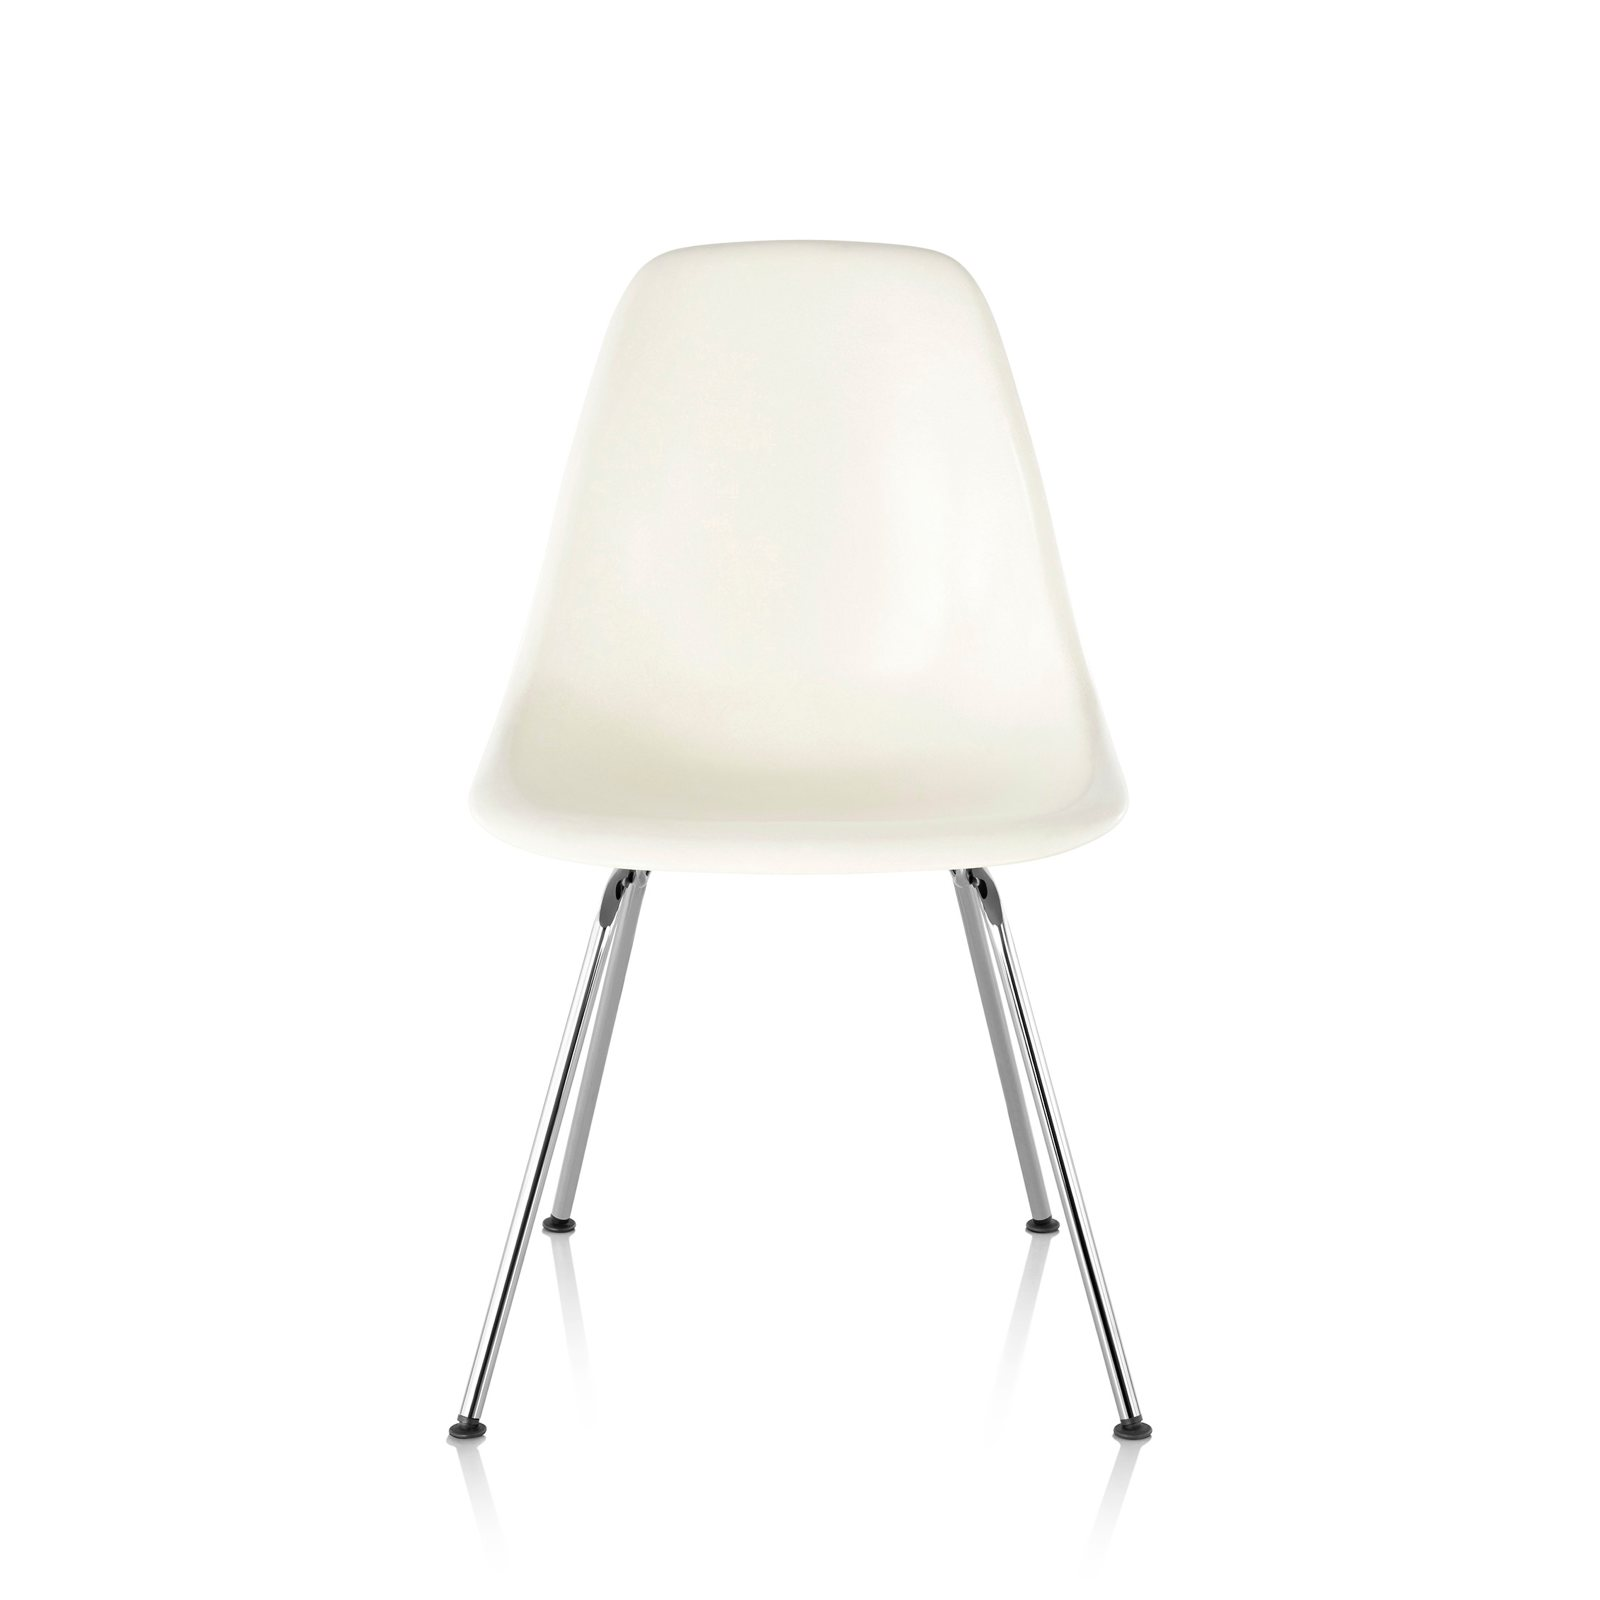 eames molded side chair breezesta adirondack chairs plastic 4 leg base by charles ray for herman miller